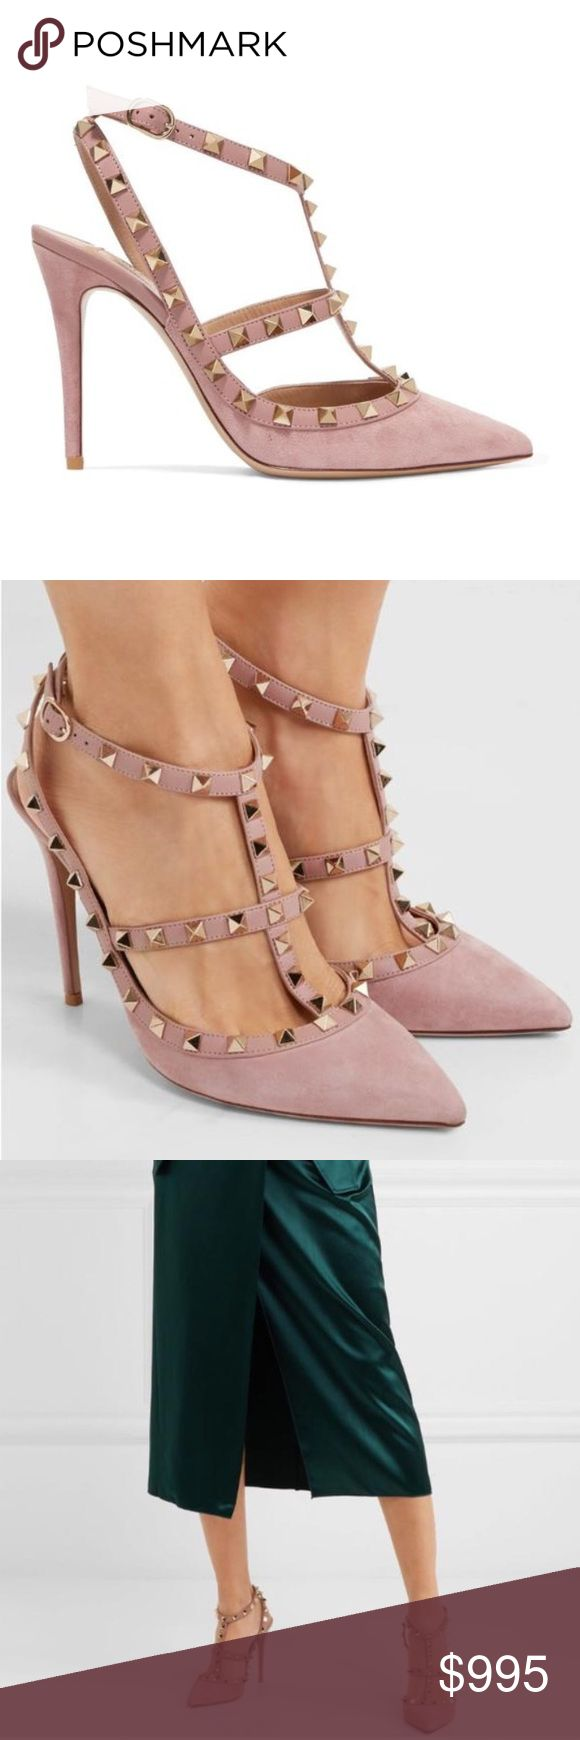 """Dusty pink Valentino Rockstud suede pumps heels Brand new 100% authentic.  Comes with shoebox, dust bag. Extra studs and top lift.  True to size. Italian size 38= size 8  Heel height: 4"""".  Made in Italy.  Will provide a copy of receipt upon request.   NO TRADE.  PRICE FIRM. Serious buyers only.  *Order of $500 and above will go through Poshmark authentication before the item is shipped to you* Valentino Shoes Heels"""